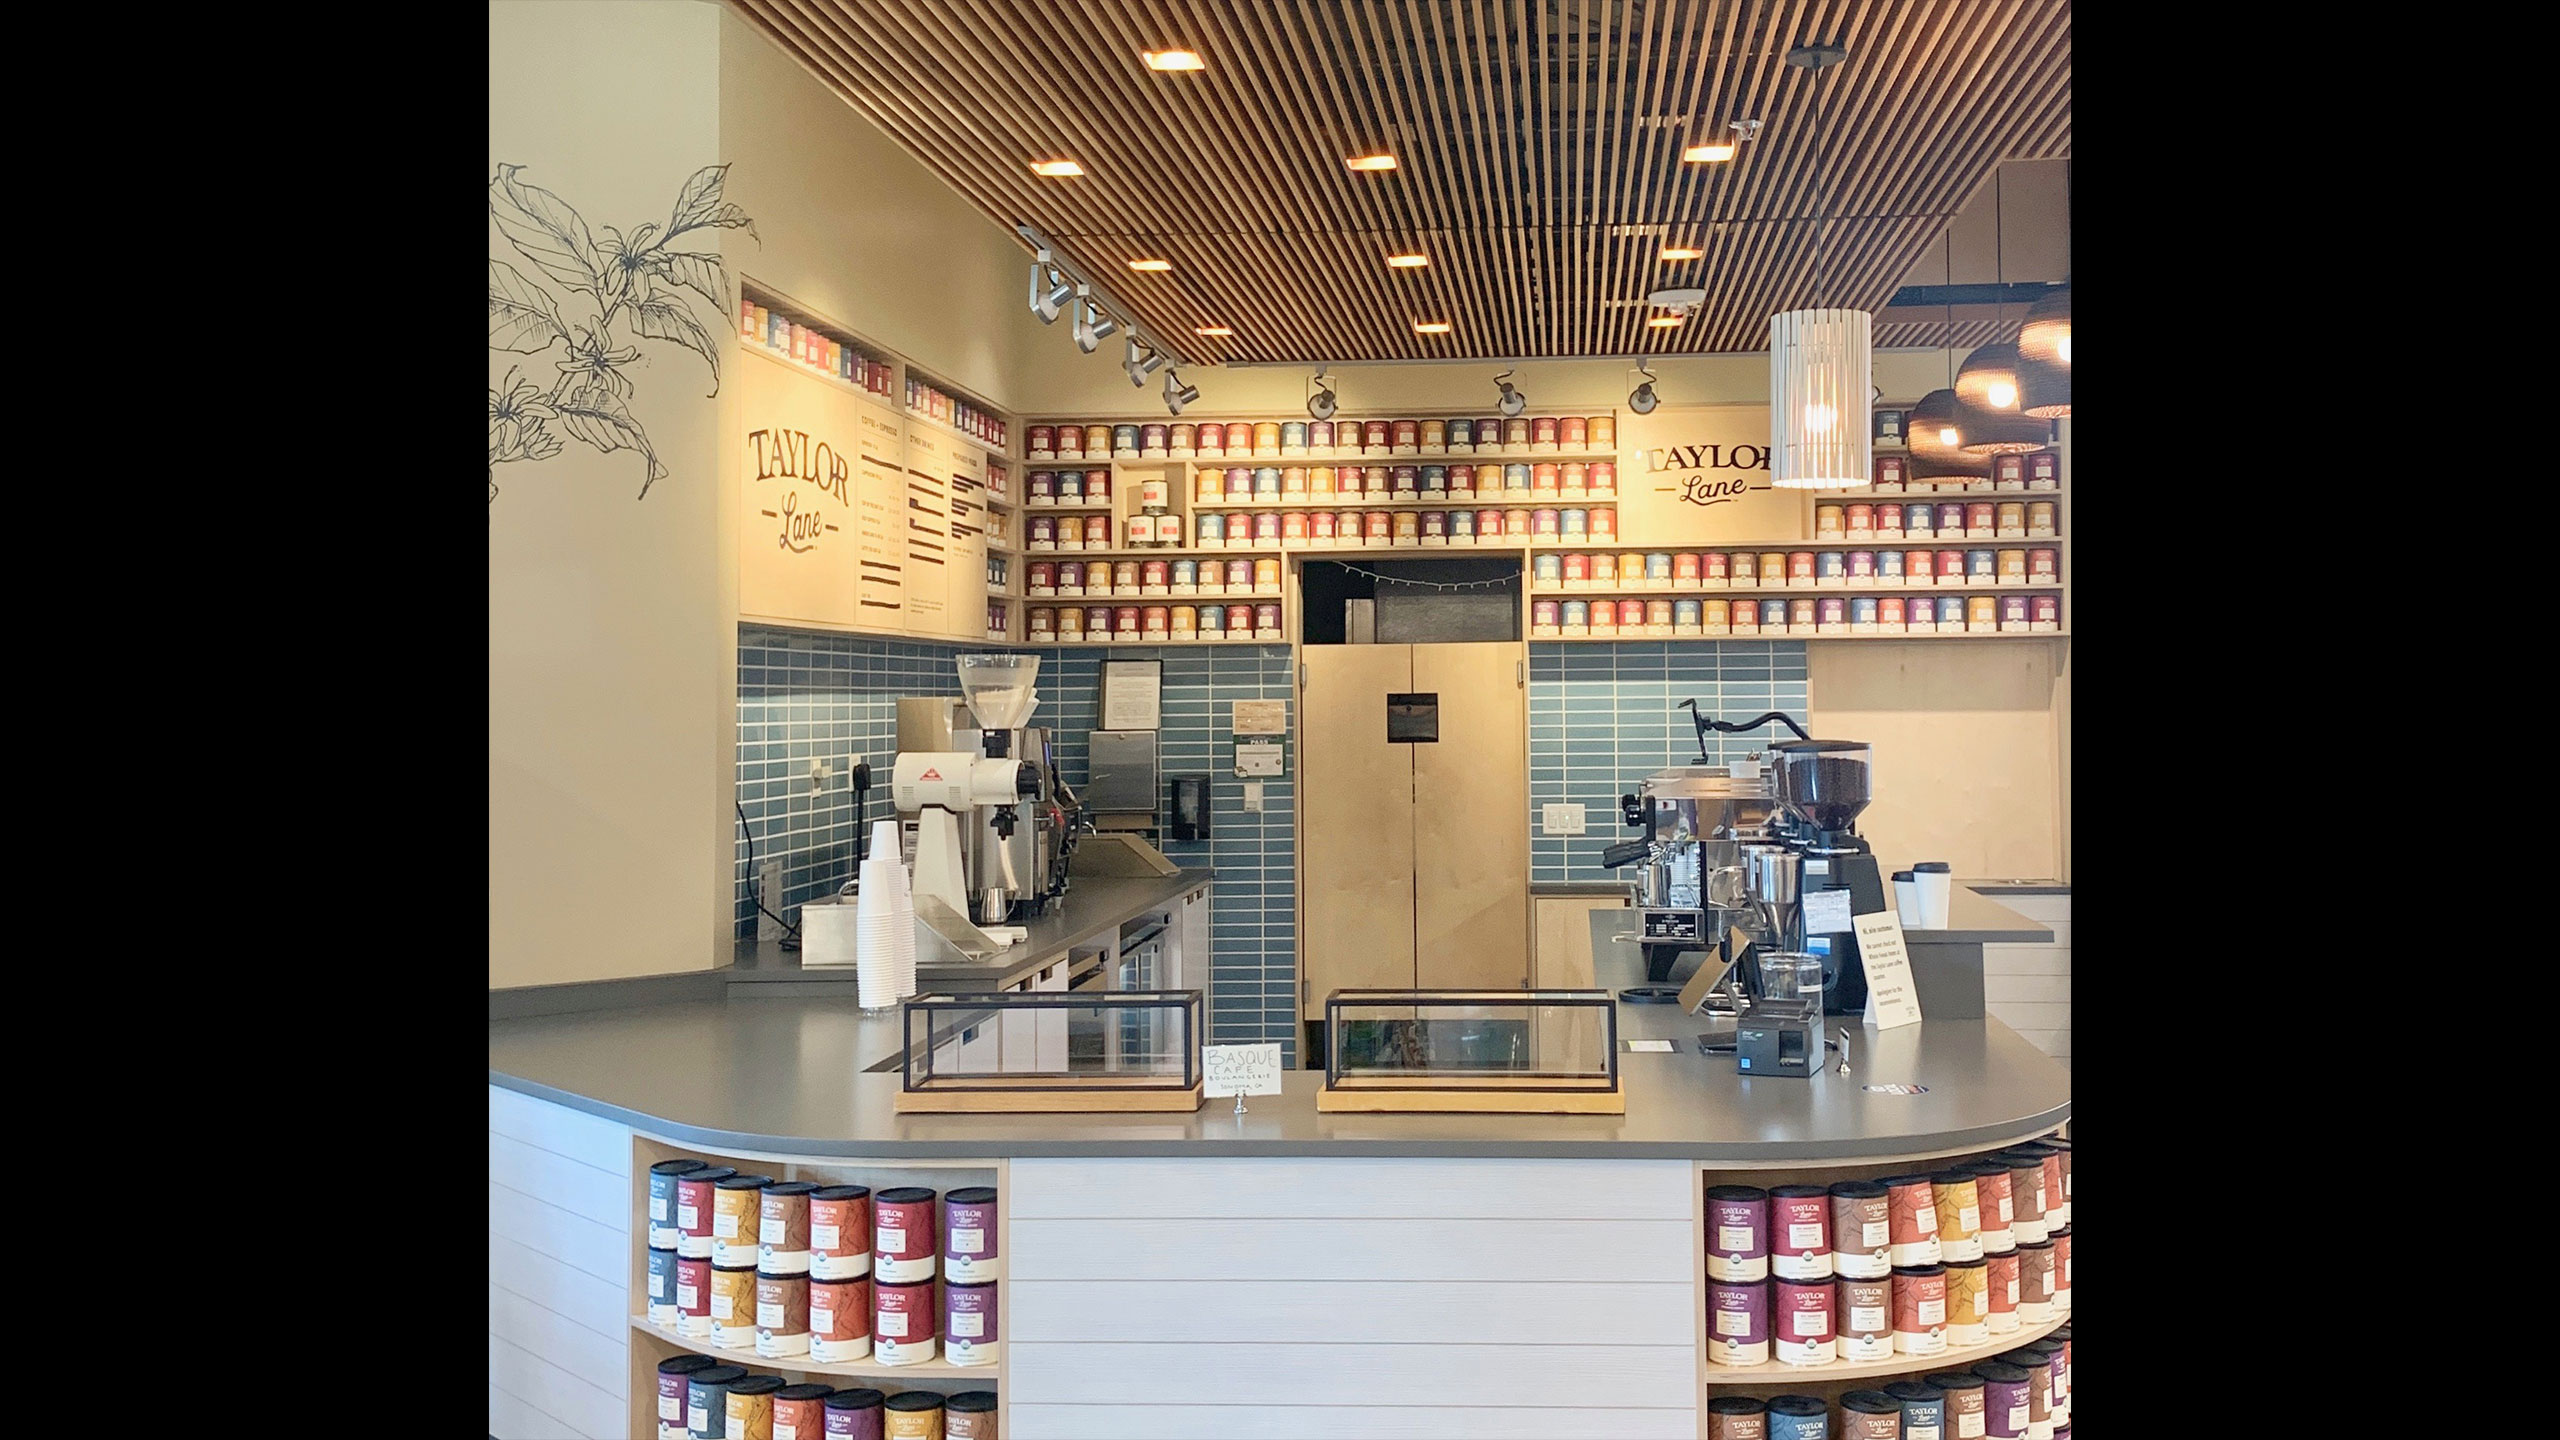 Coffee-Shop-Design-Taylor-Lane-2-Coffee-built-in-shelving-and-wall-paper